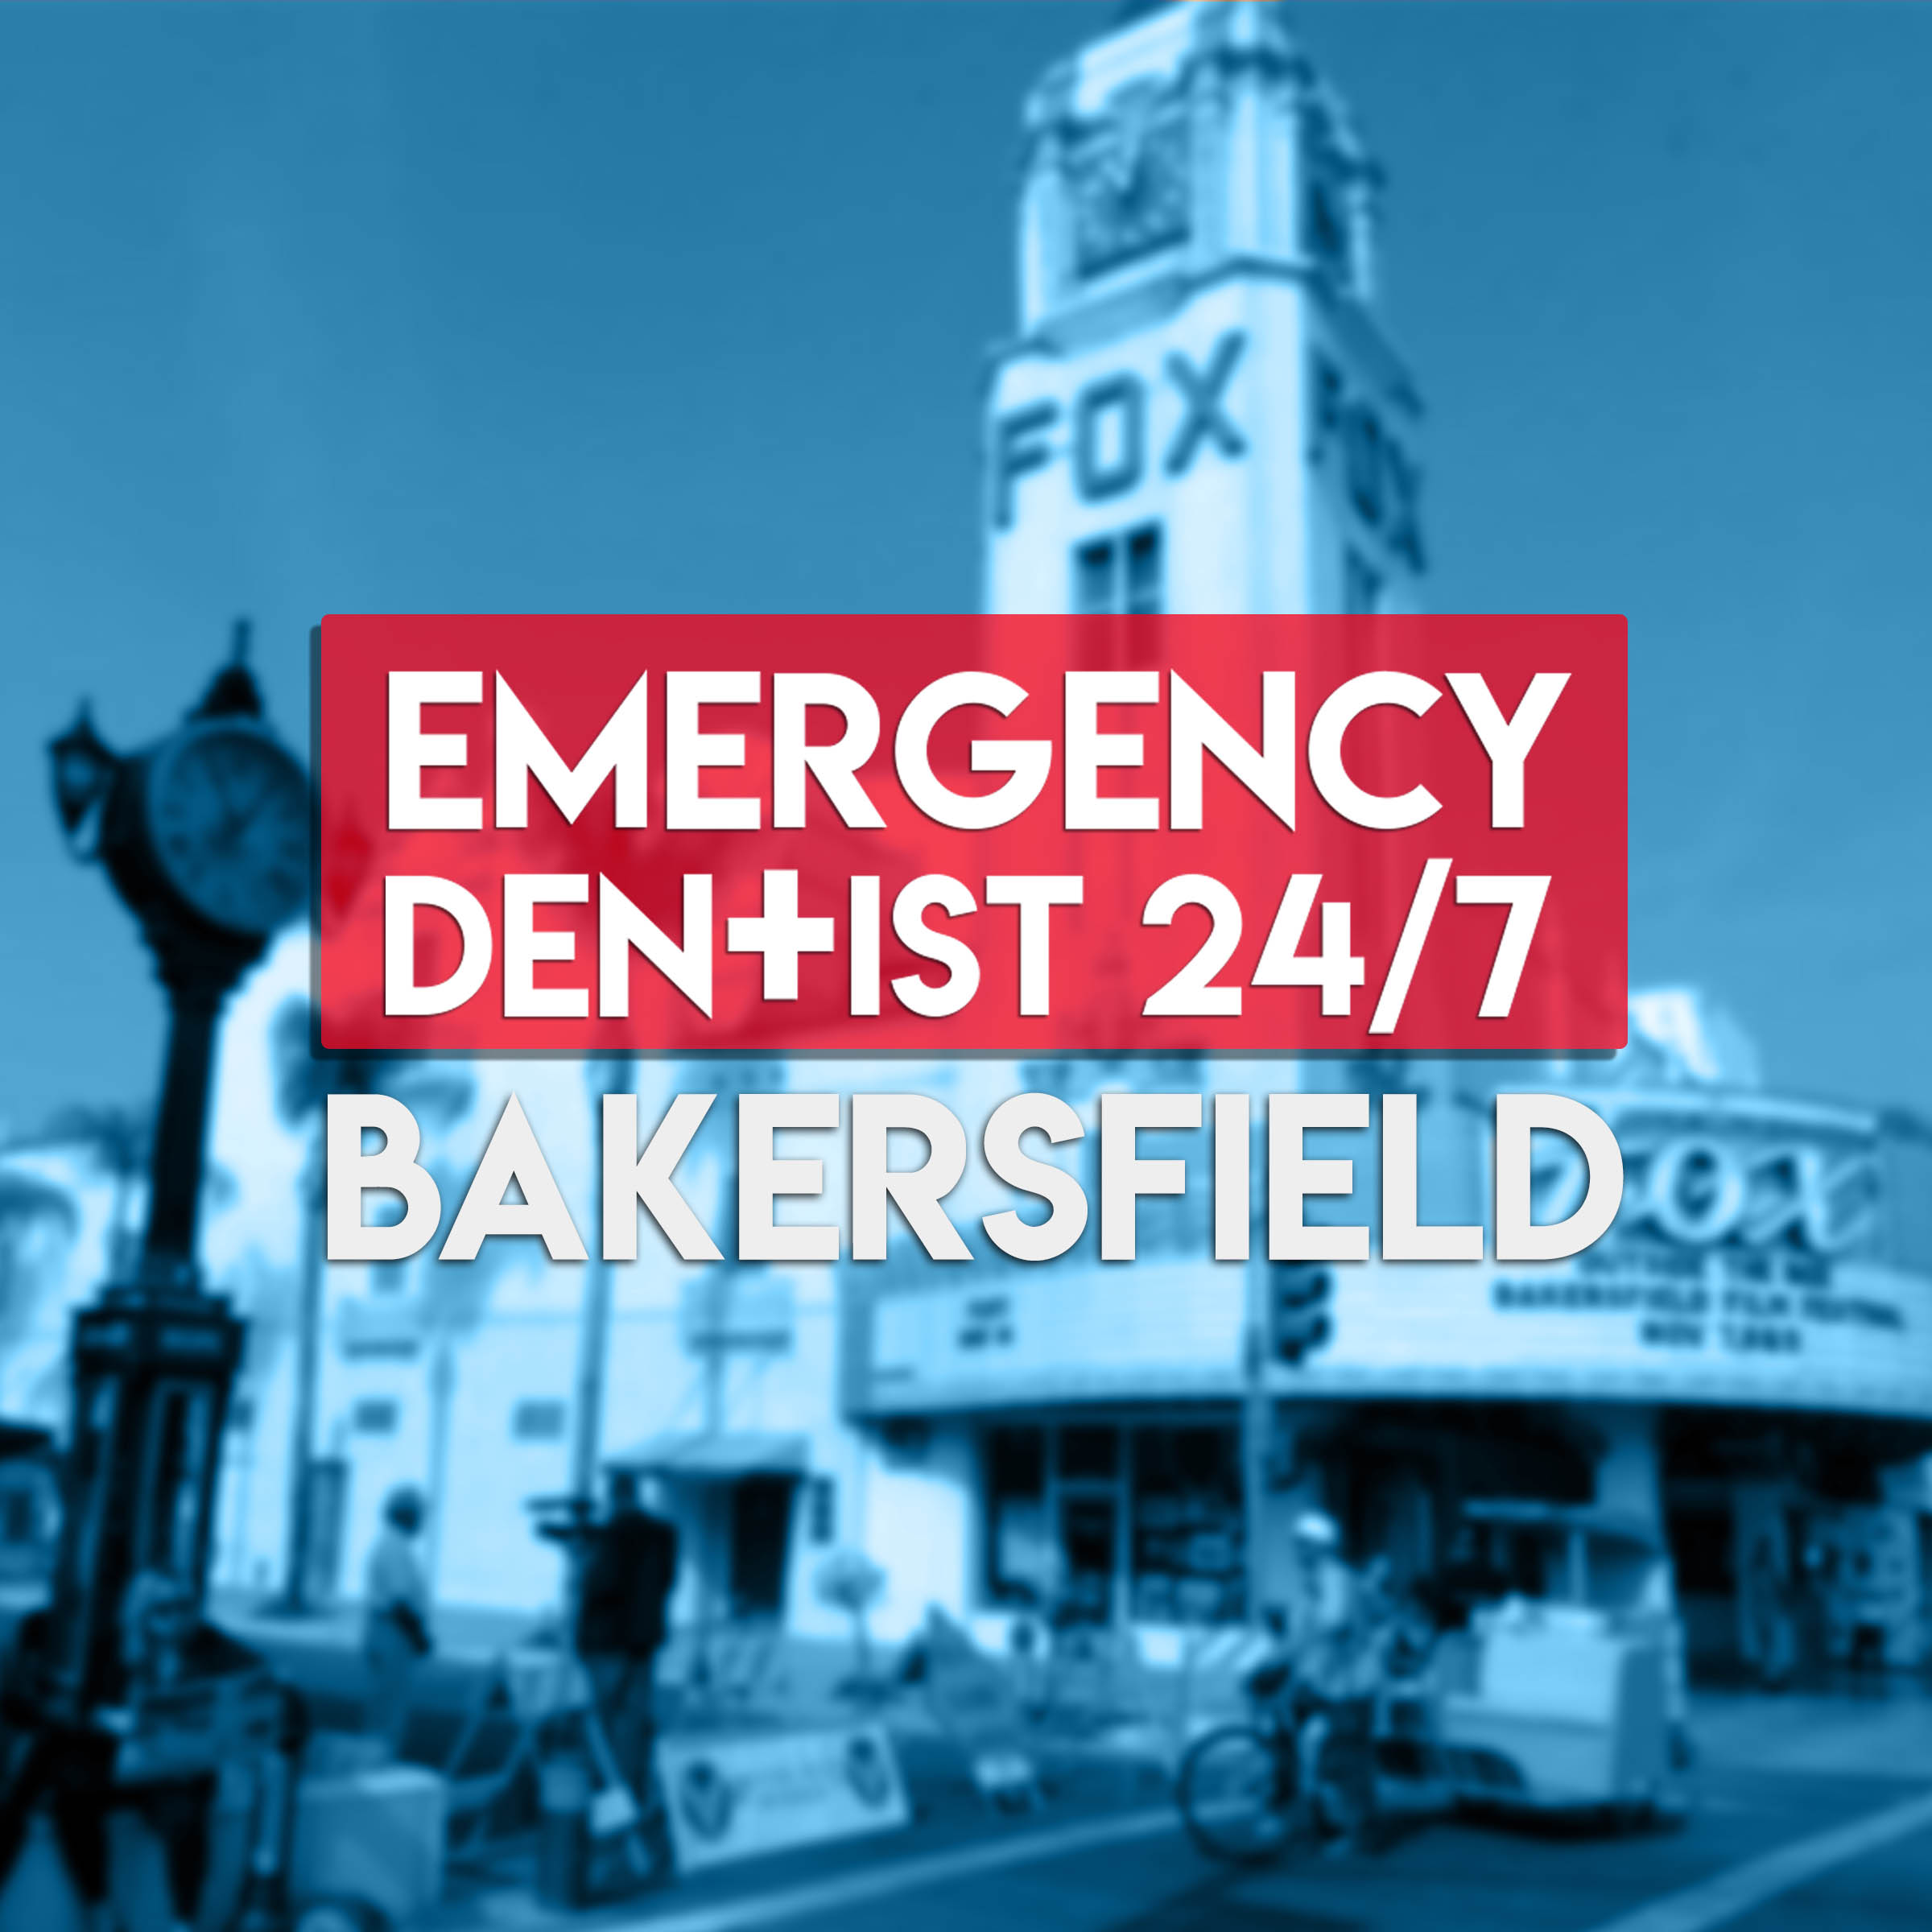 emergency dentist 247 bakersfield